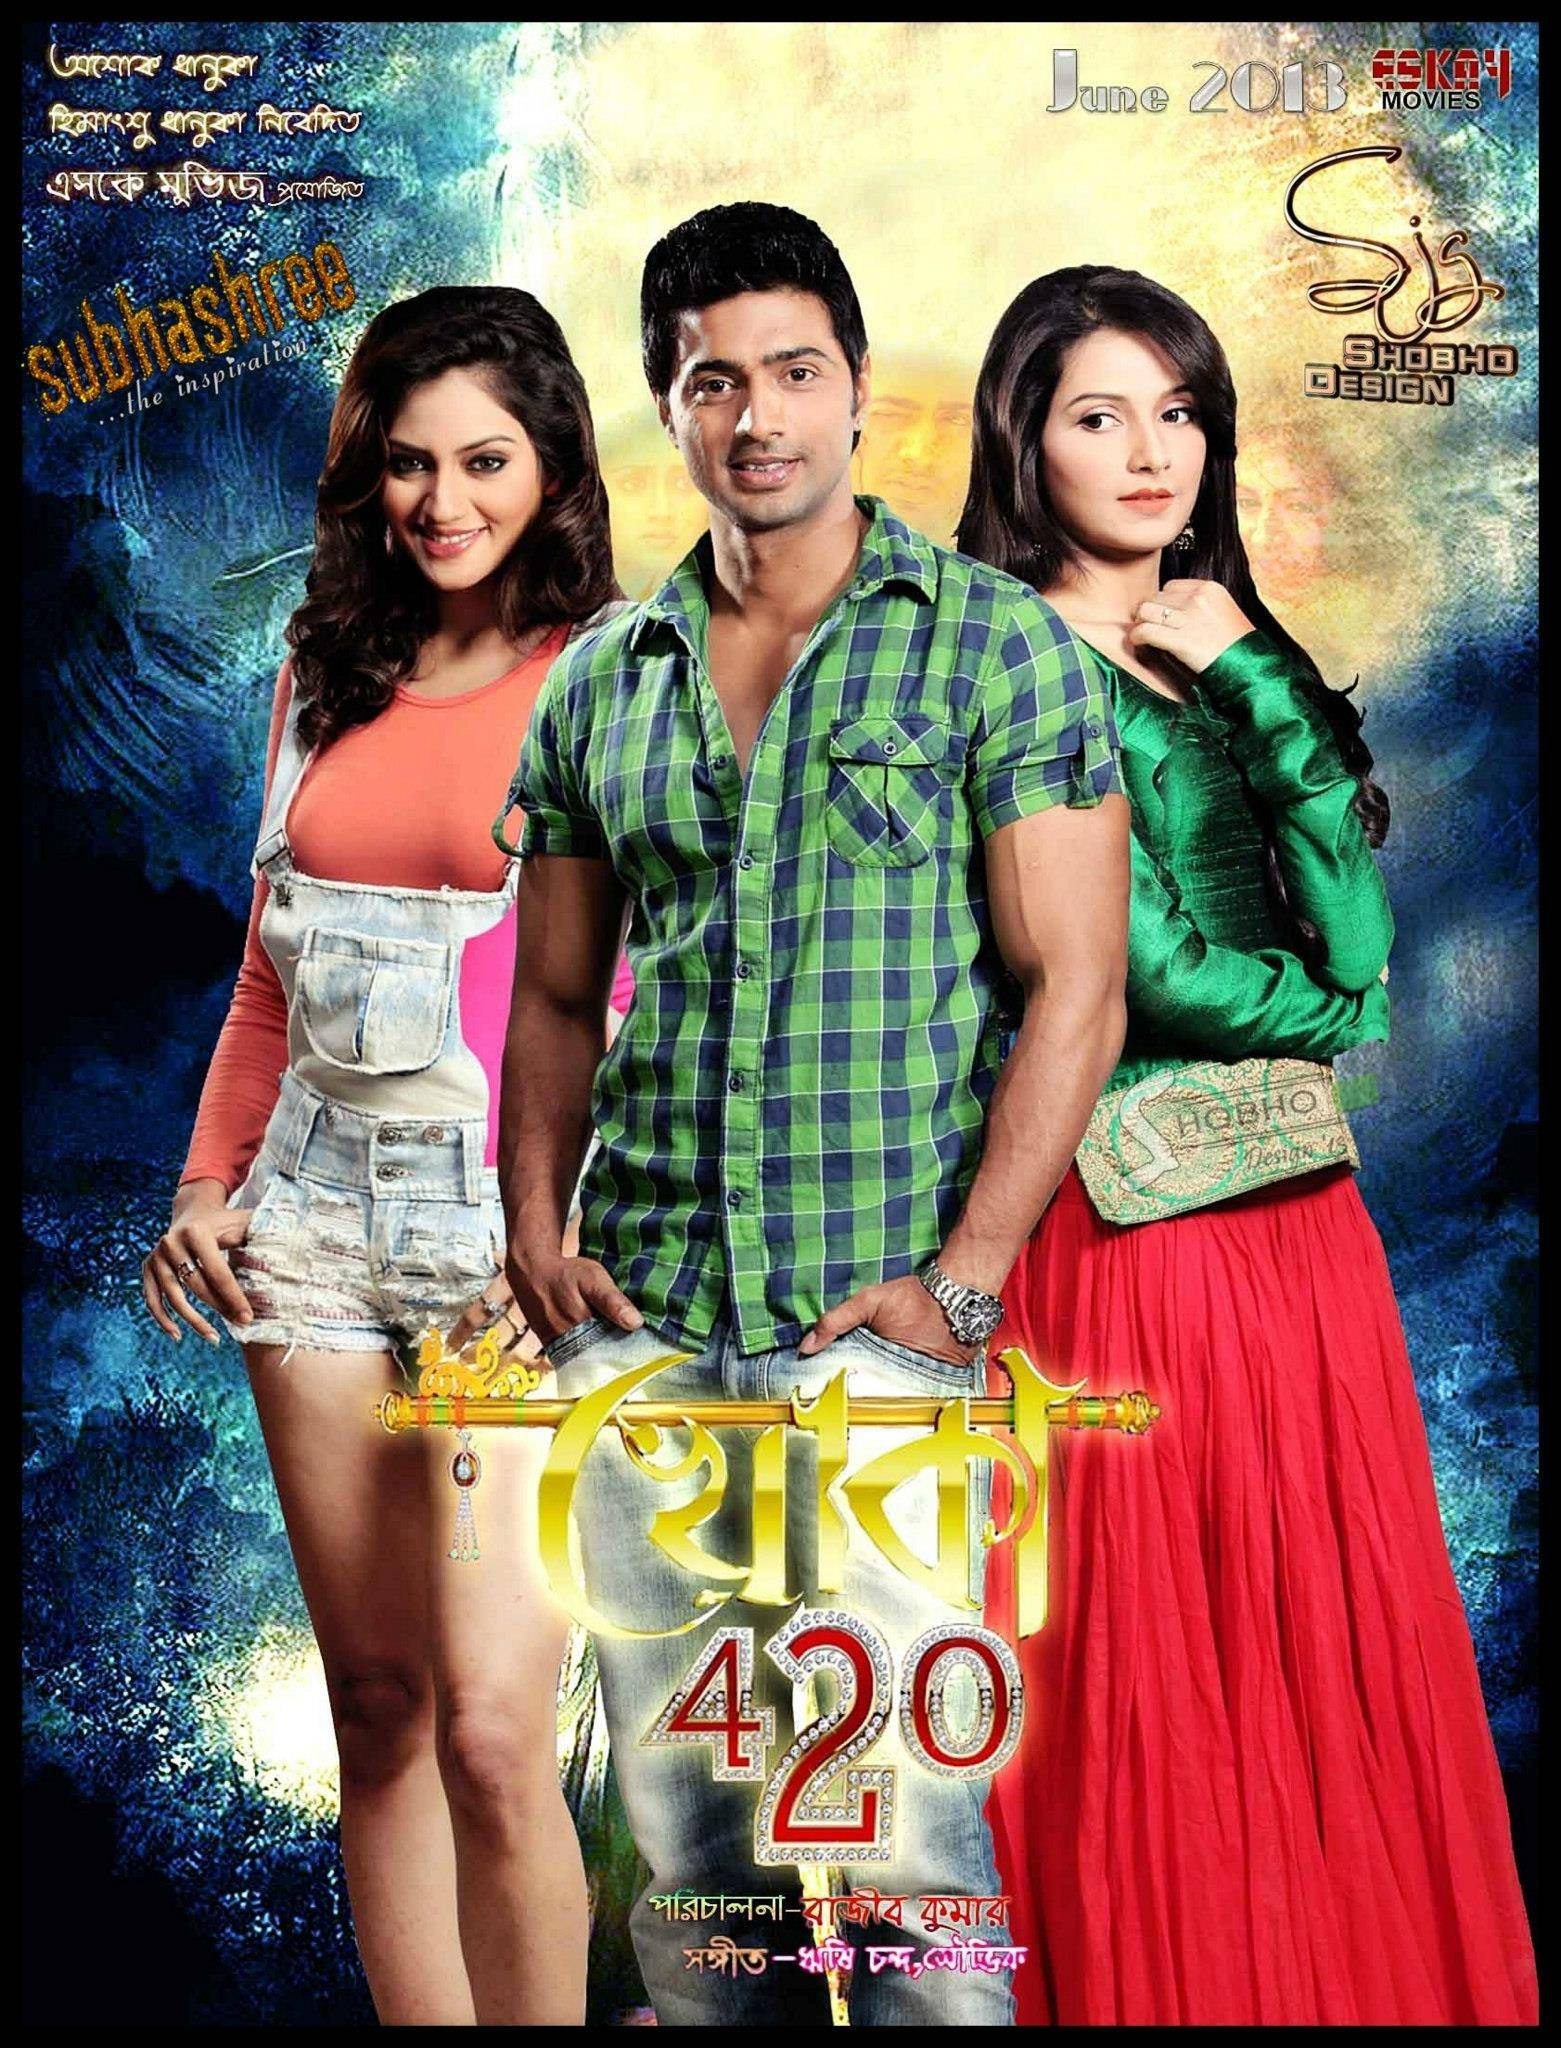 Khoka 420 (2013) Bengali 720p HDRip x264 AAC ESubs Full  (1.2GB) Full Movie Download